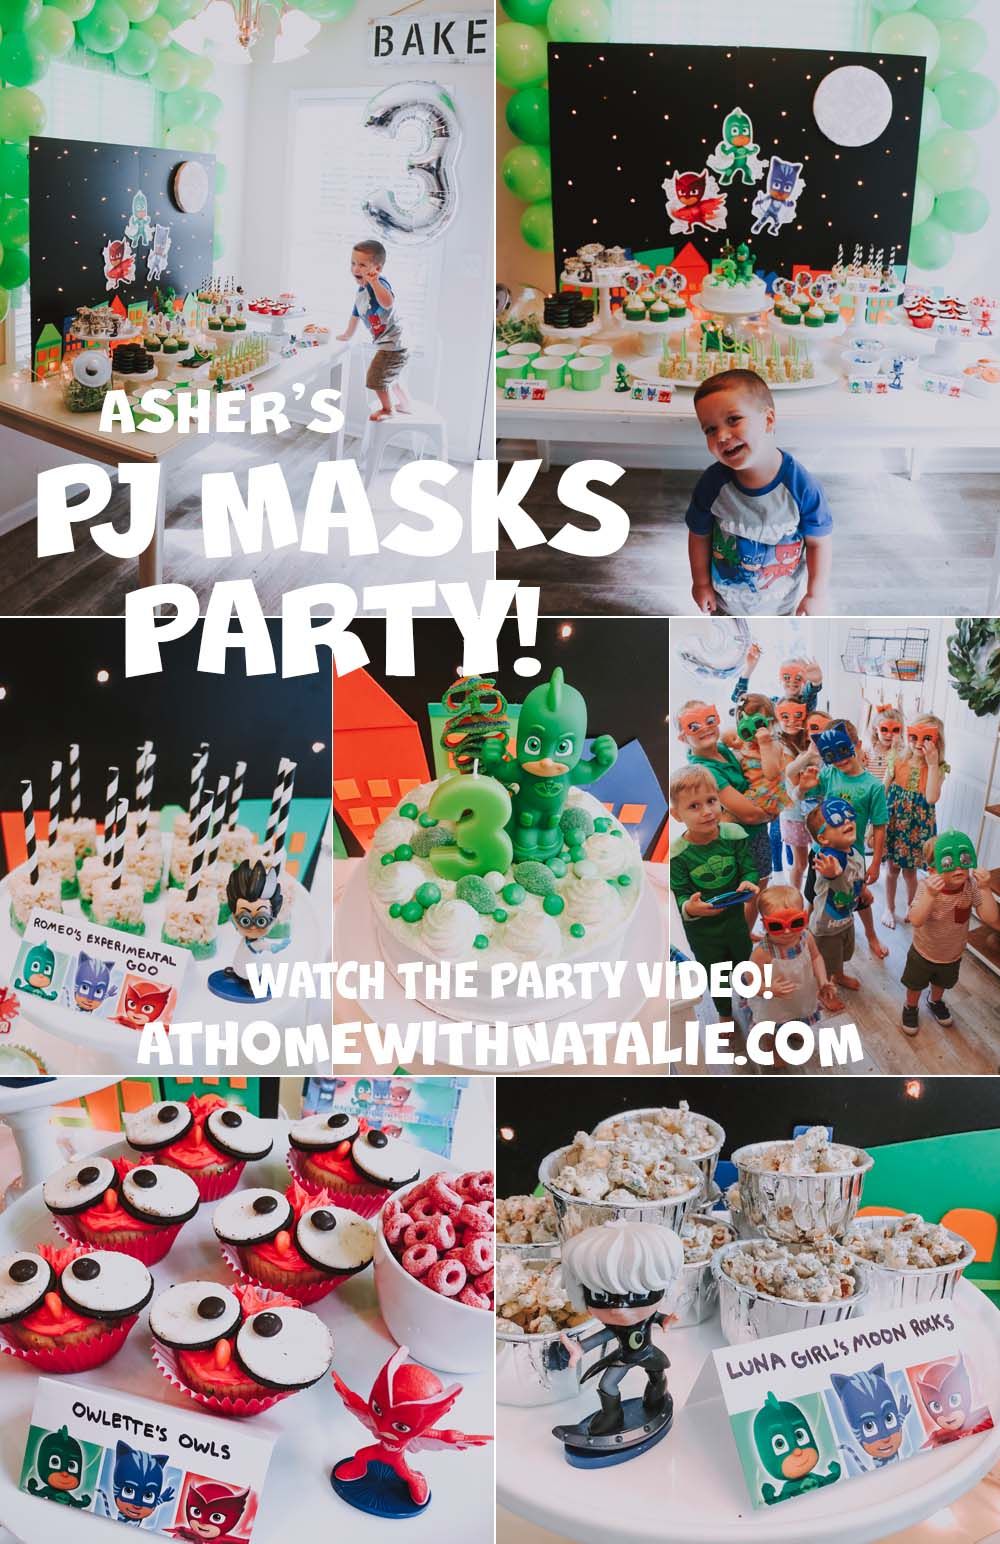 Asher's PJ Masks Birthday Party – Video, Photos and DIY Details!